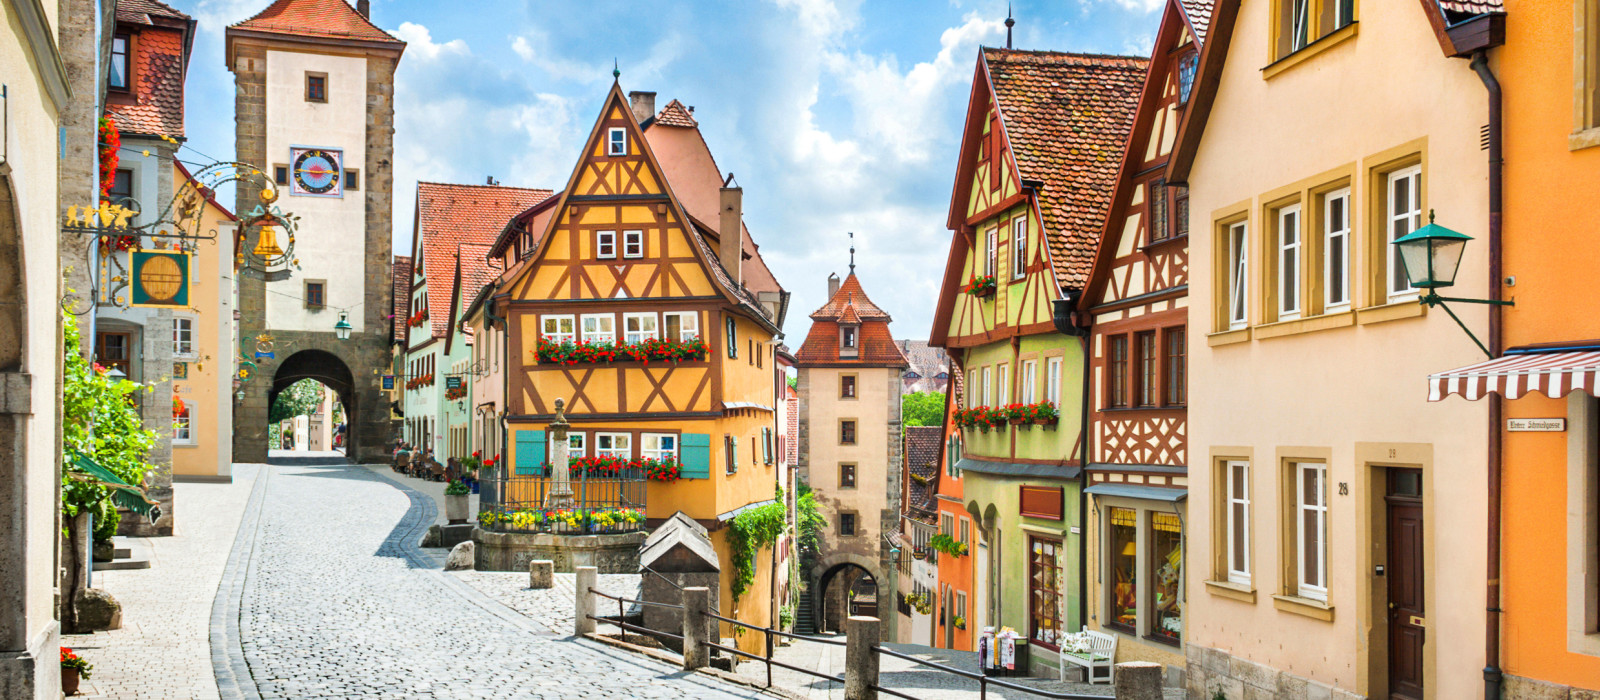 Destination Rothenburg ob der Tauber Germany